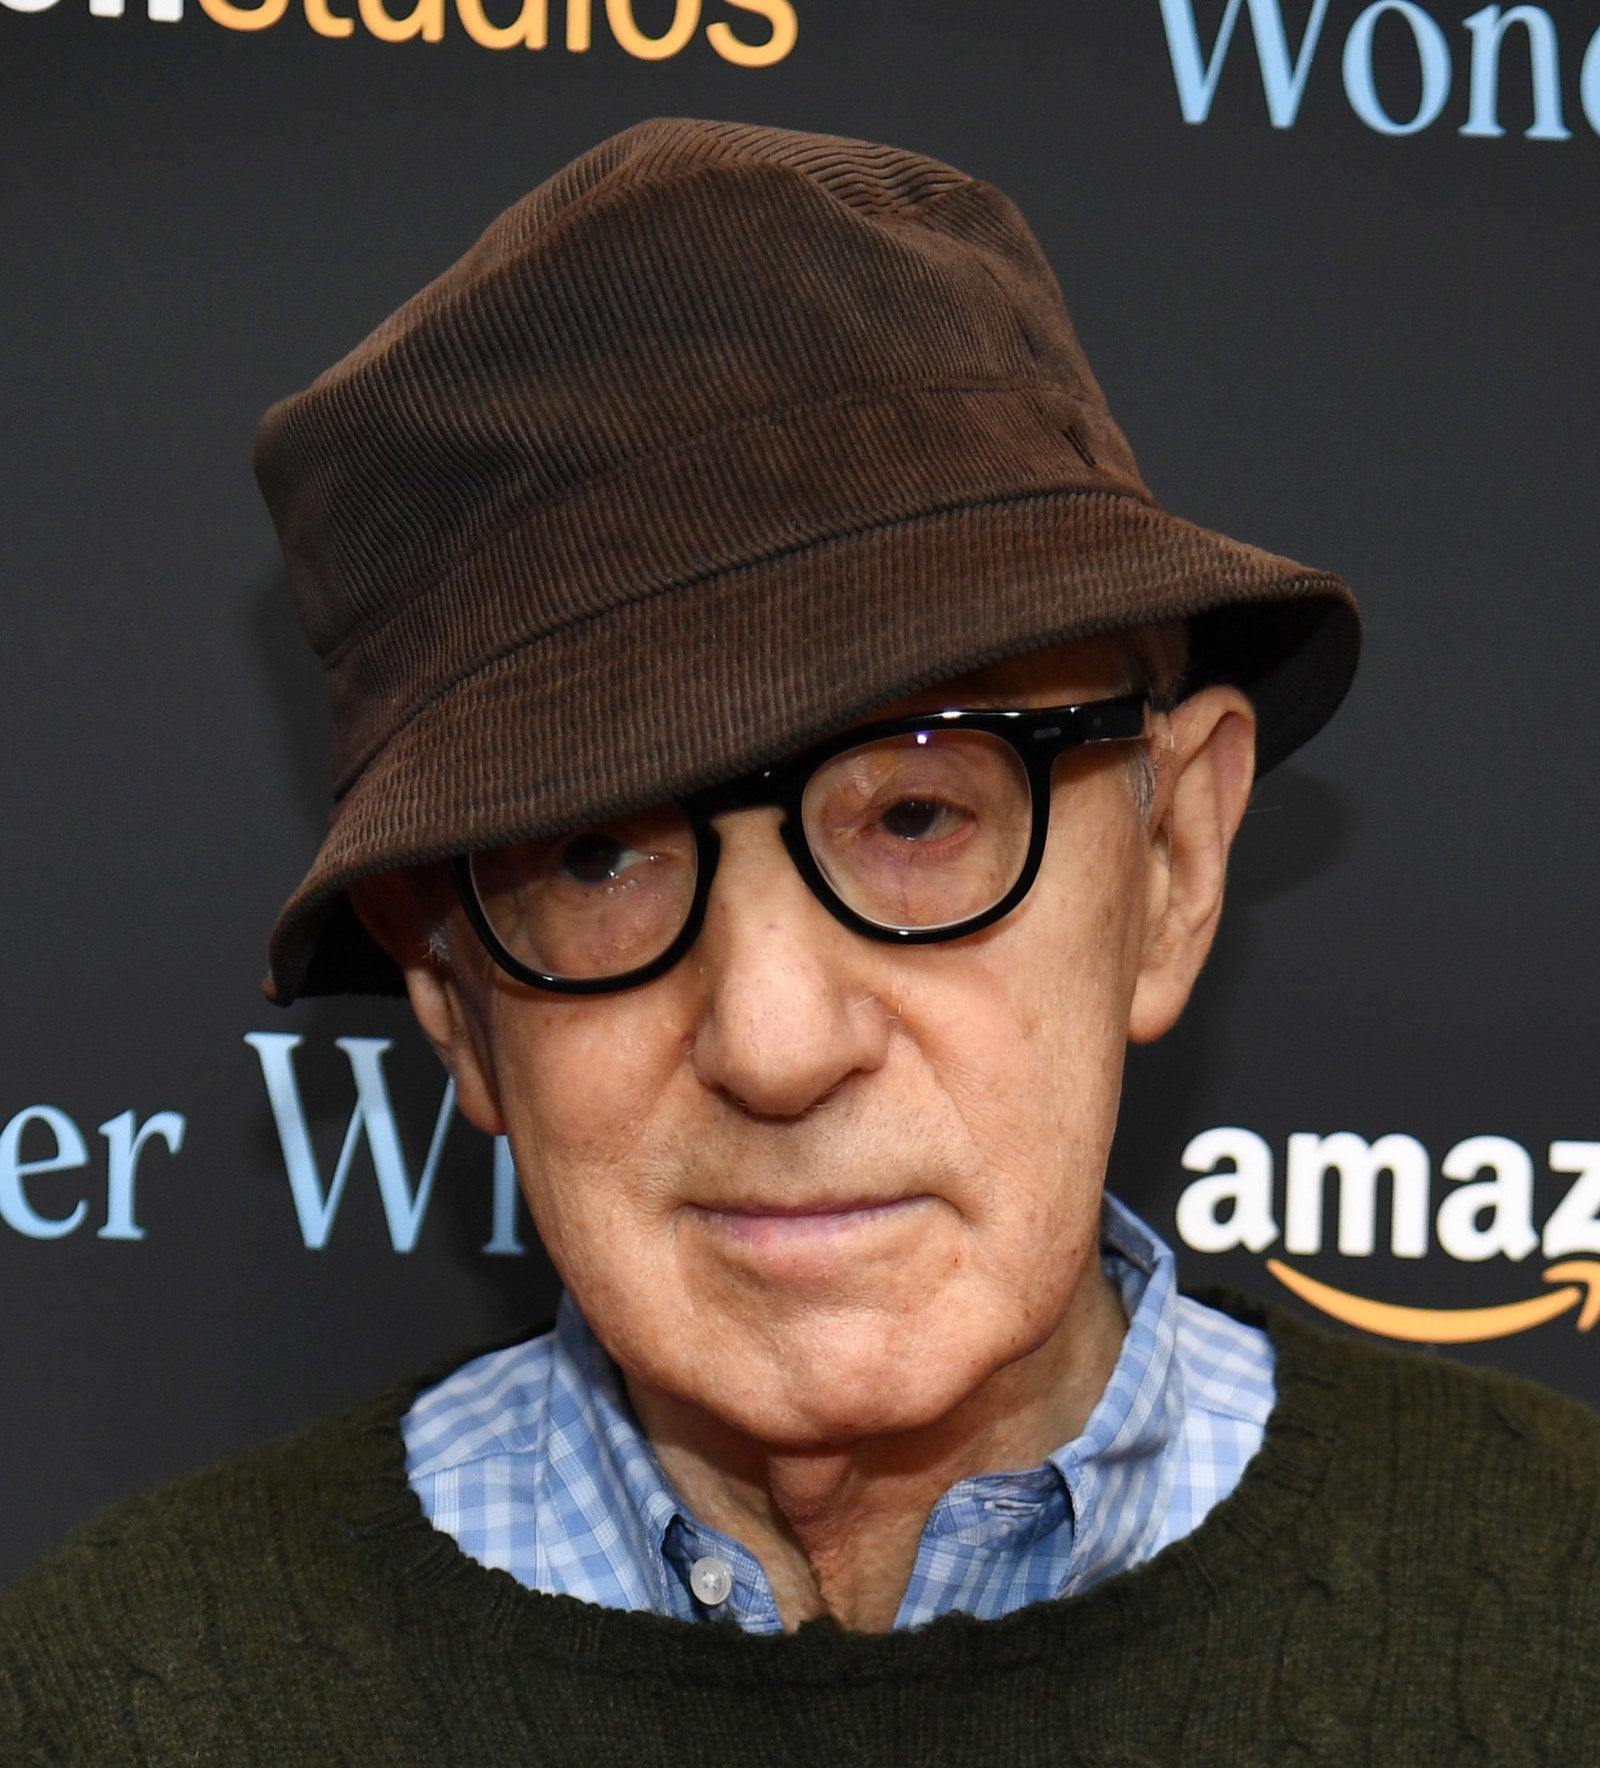 """Amid the avalanche of sexual harassment allegations in Hollywood following the Harvey Weinstein scandal, Farrow wrote a piece for the Los Angeles Times last month, asking why Allen's career was still flourishing: """"Why is it that Harvey Weinstein and other accused celebrities have been cast out by Hollywood, while Allen recently secured a multimillion-dollar distribution deal with Amazon?"""""""